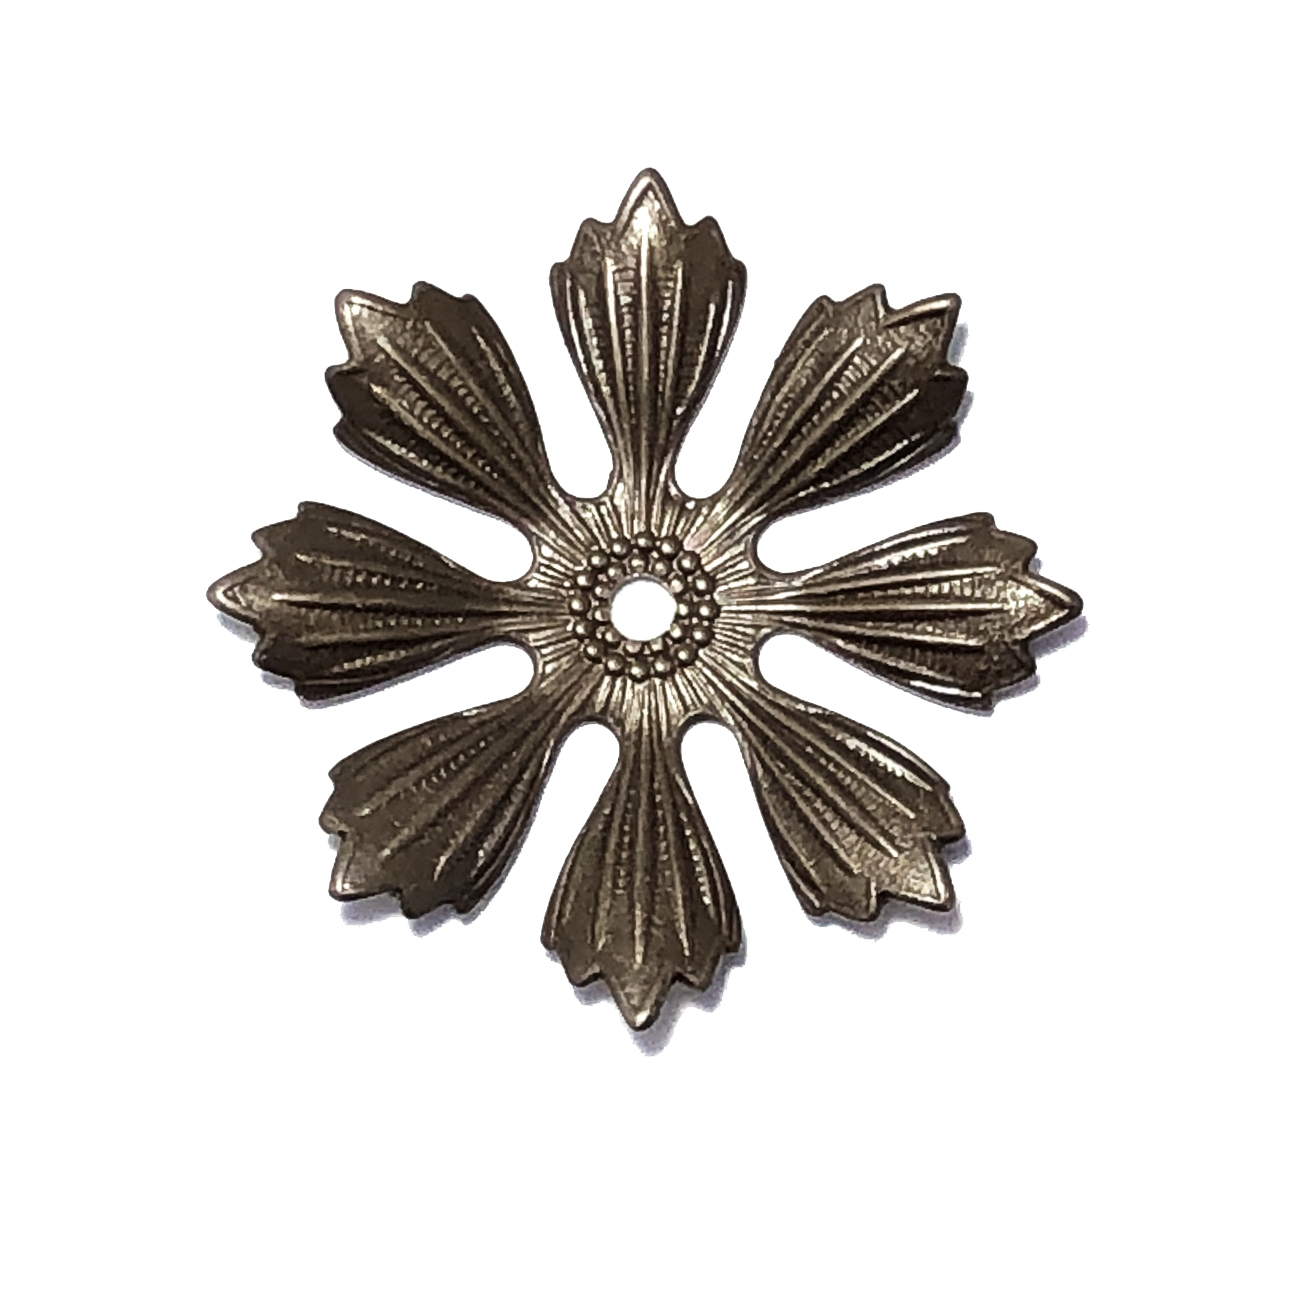 brass flower, choxie, drilled, 09881, flower, eight petals, chocolate brass, Bsue Boutiques, jewelry supplies, leaves, flowers, drilled flower, flower layer, 33mm